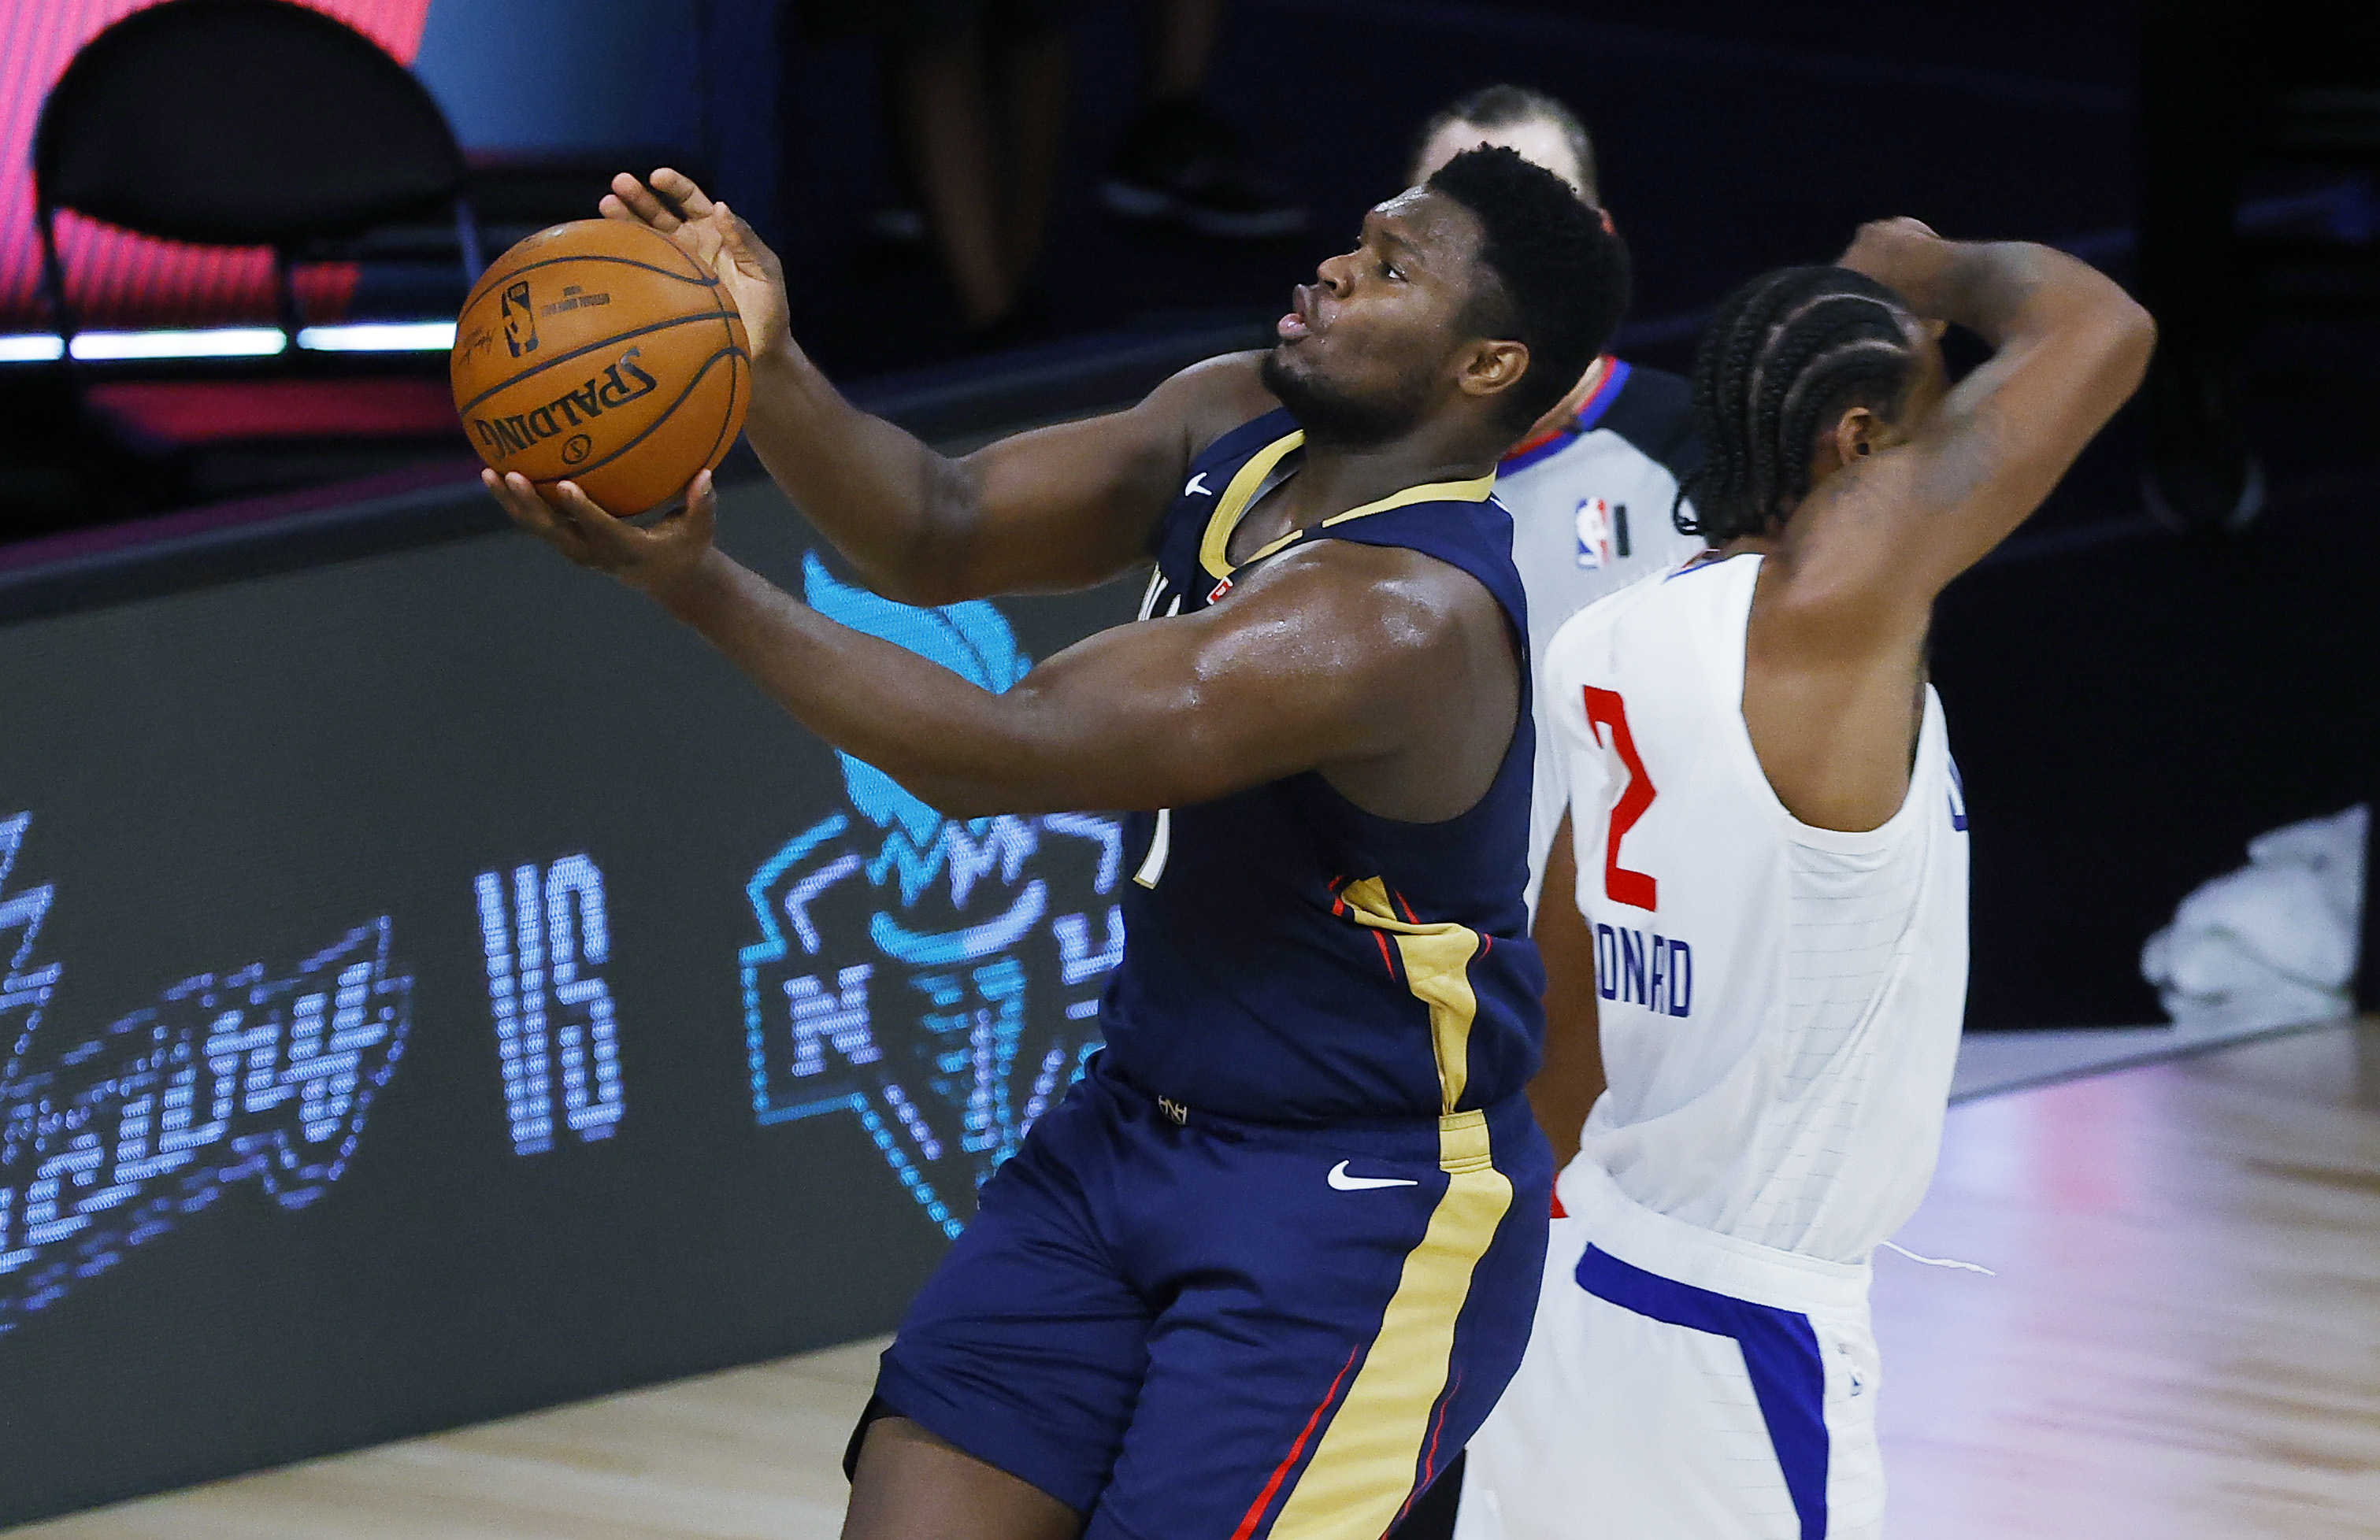 Did the NBA Rig the New Schedule to Get Zion Williamson and the Pelicans in the Playoffs?